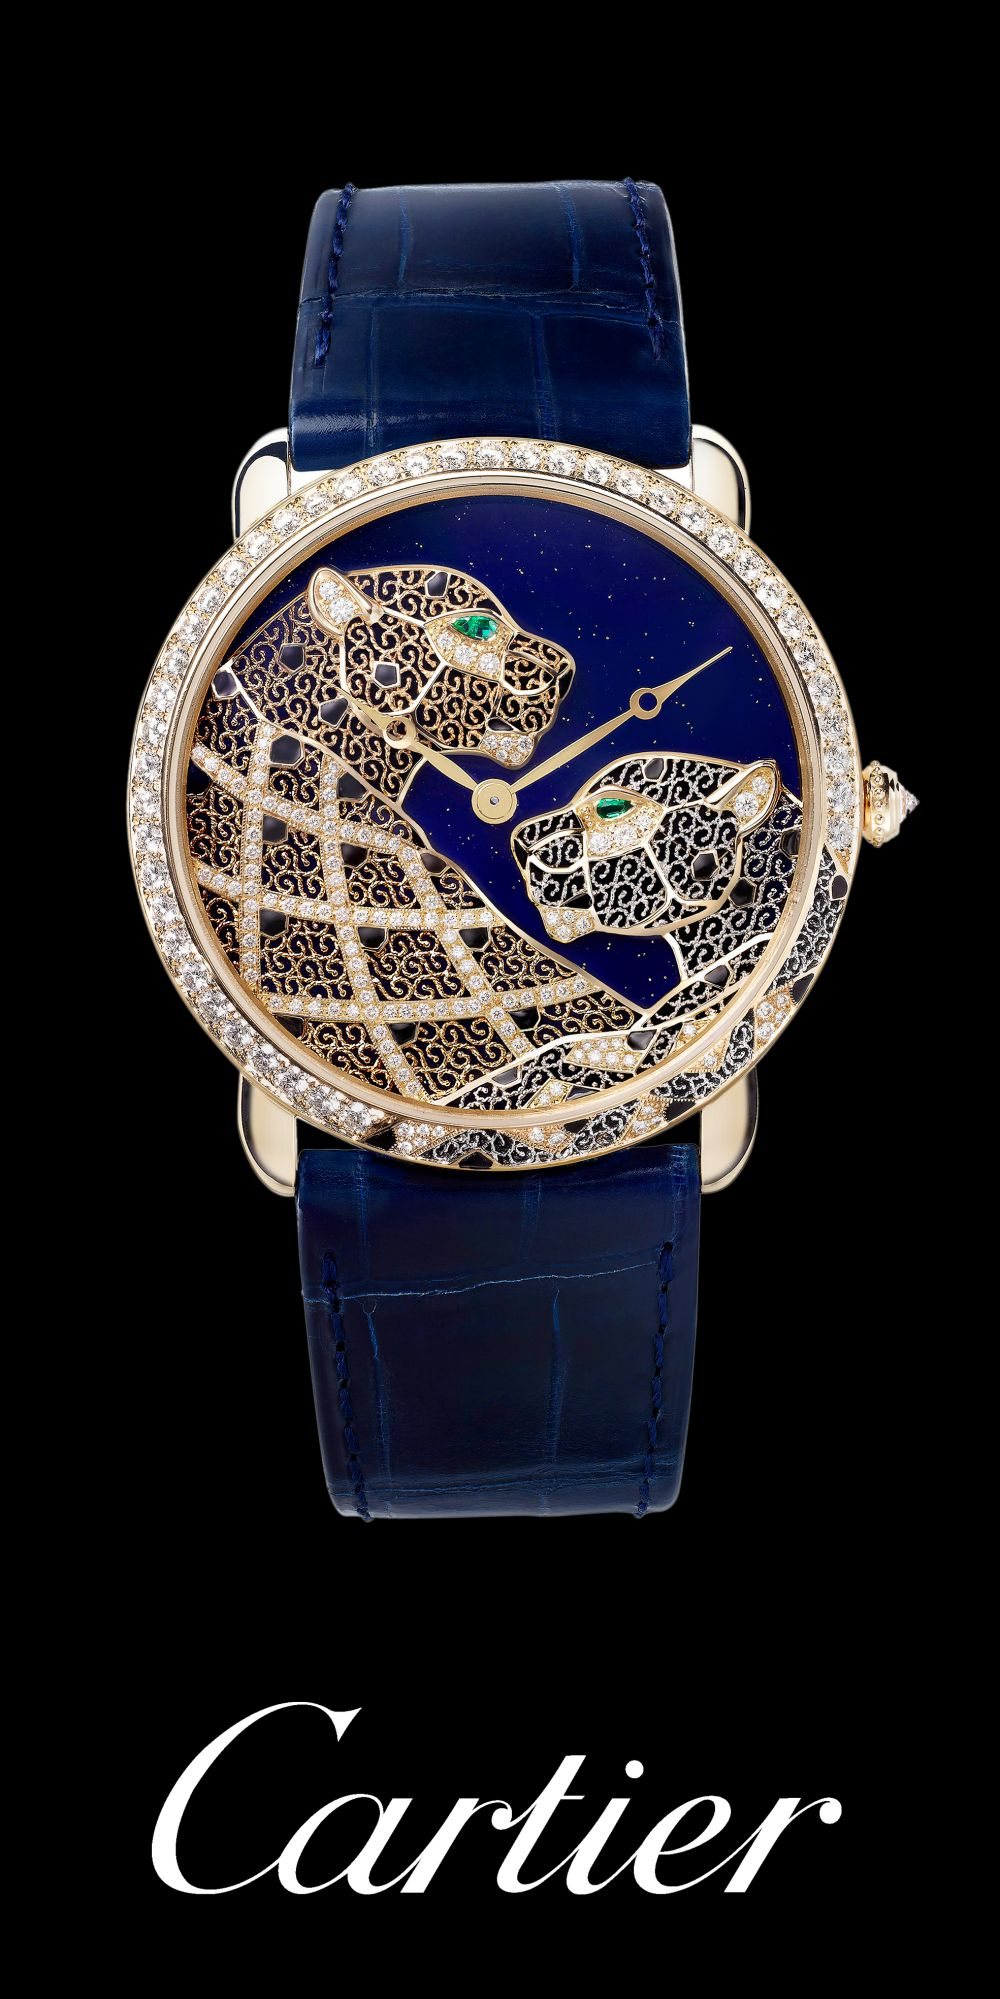 Cartier-Ronde-Louis-Cartier-XL-Watch-filigree-Panthers-Motif.jpg